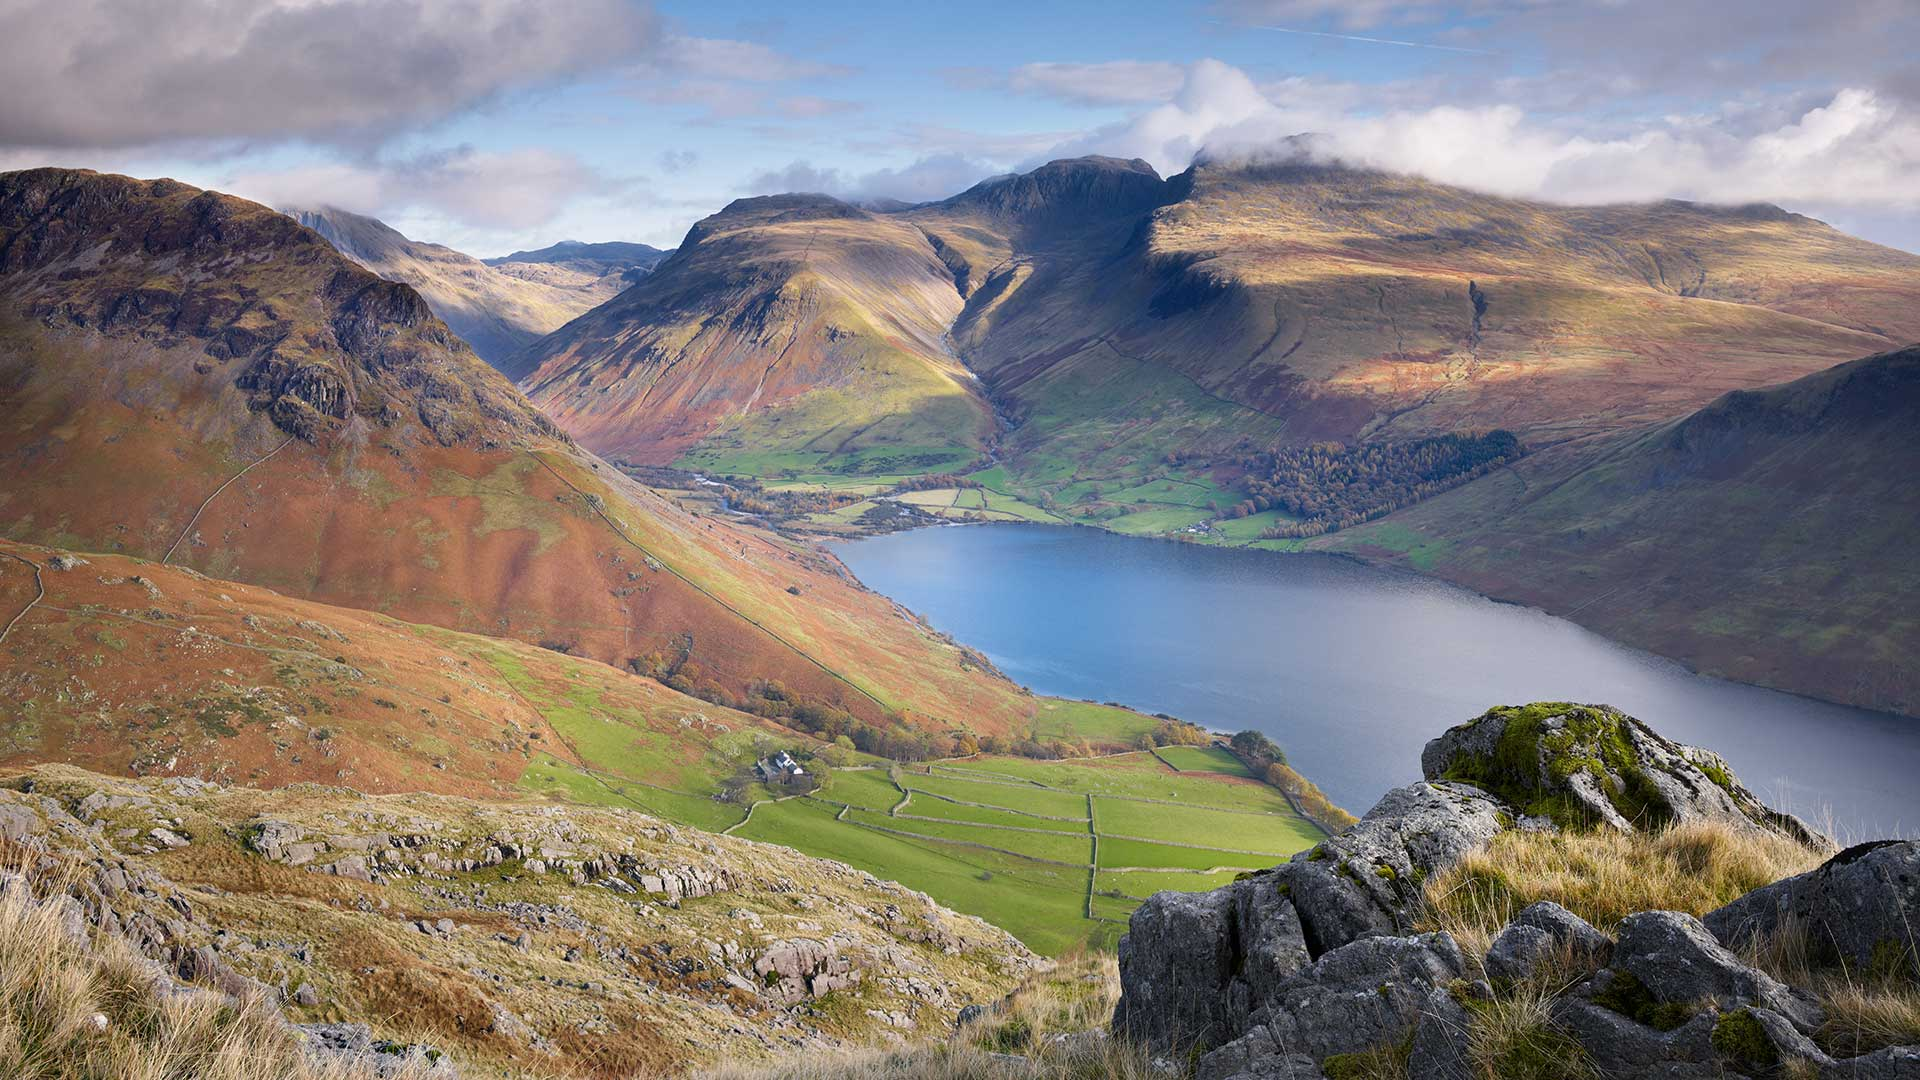 lake_district_visitbritain_joe_cornish.jpg